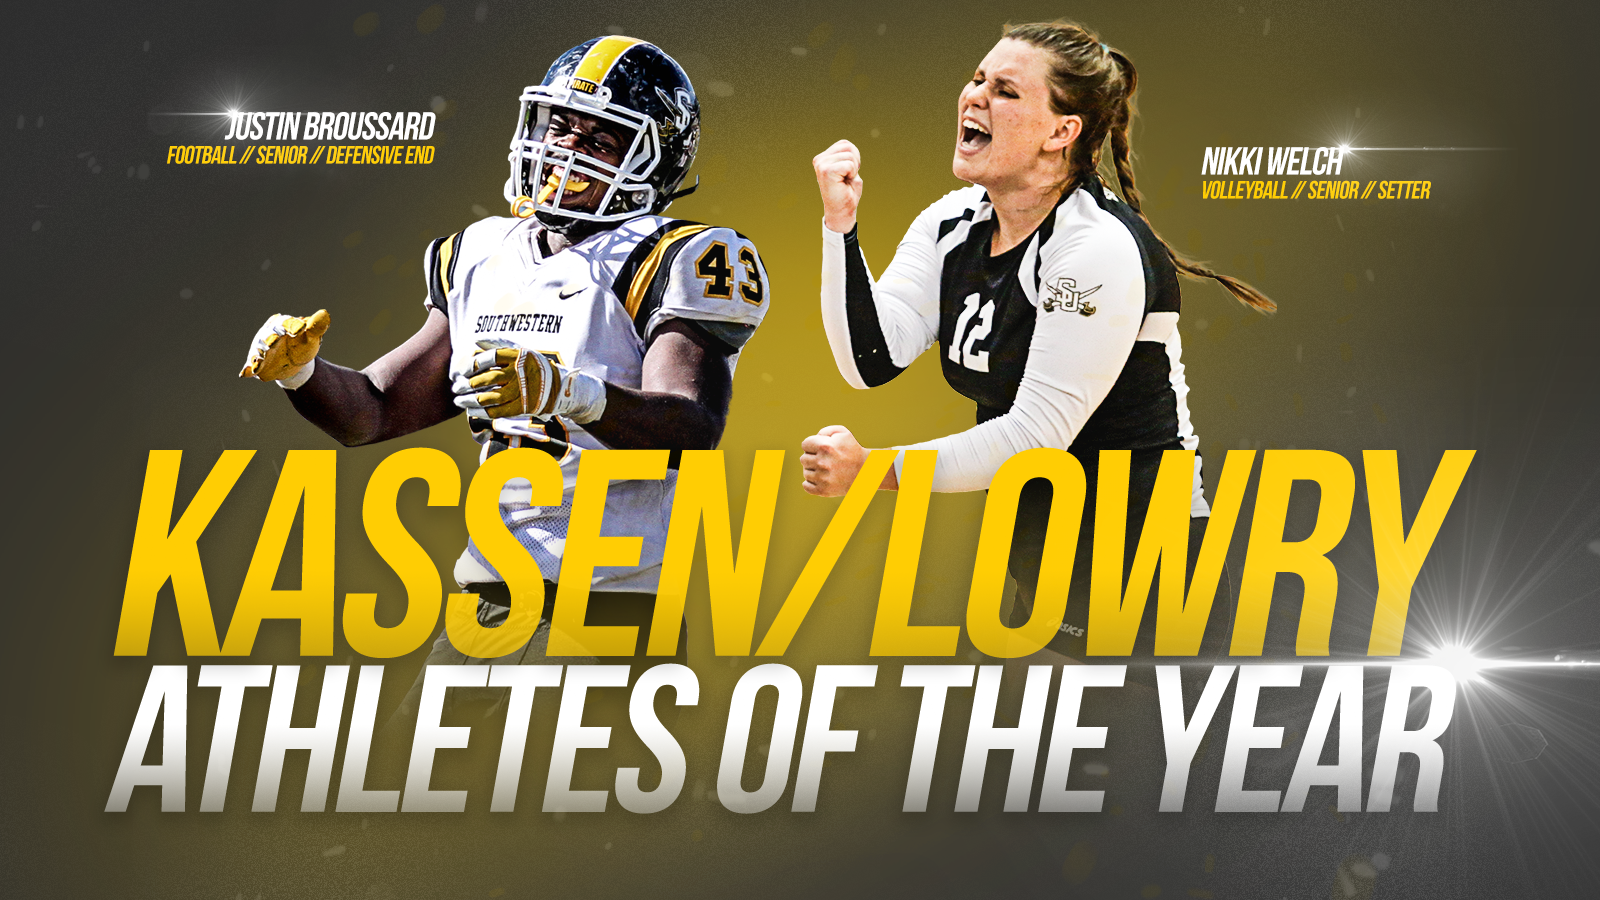 Broussard, Welch named Kassen/Lowry Athletes of the Year